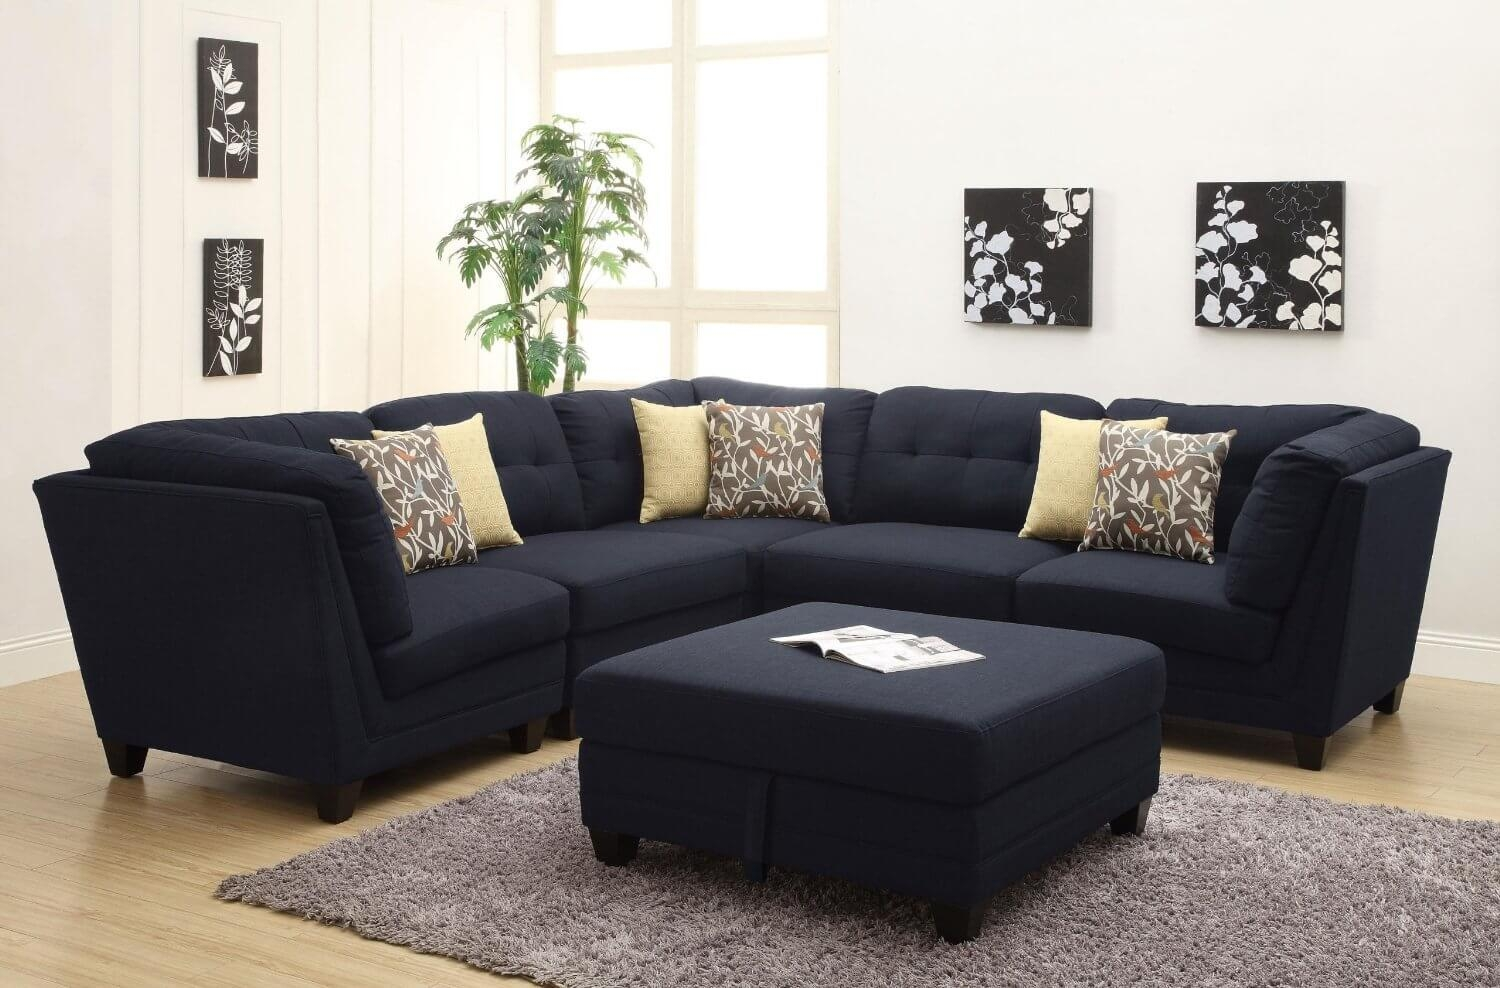 Furniture West Elm Tillary Ottoman West Elm Sectional Reviews – Ftfpgh Throughout West Elm Sectional Sofa (View 9 of 20)